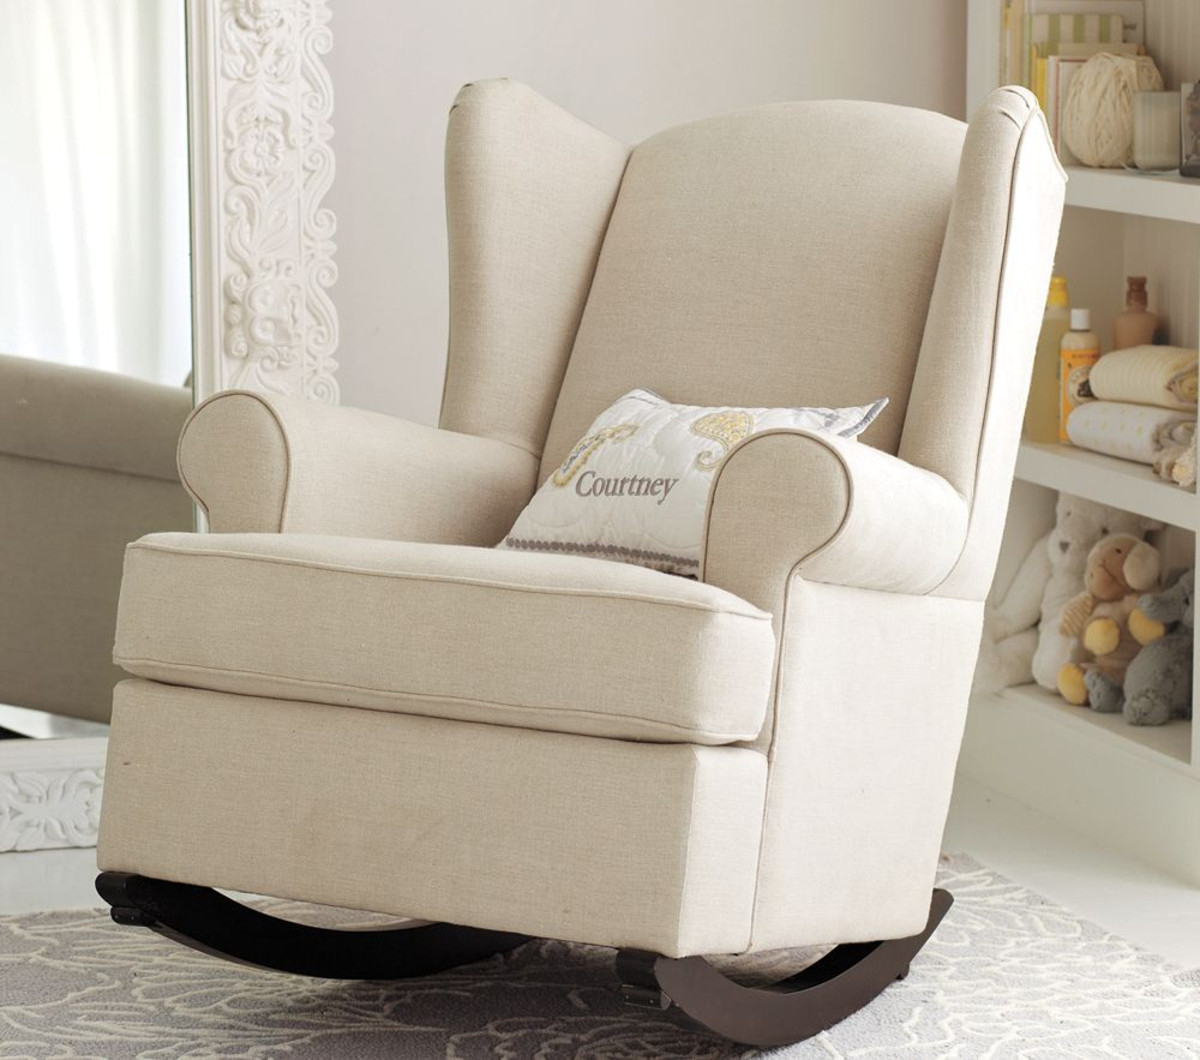 Upholstered Rocking Chair For Nursery — Msp Design Show With Regard To Padded Rocking Chairs (#19 of 20)